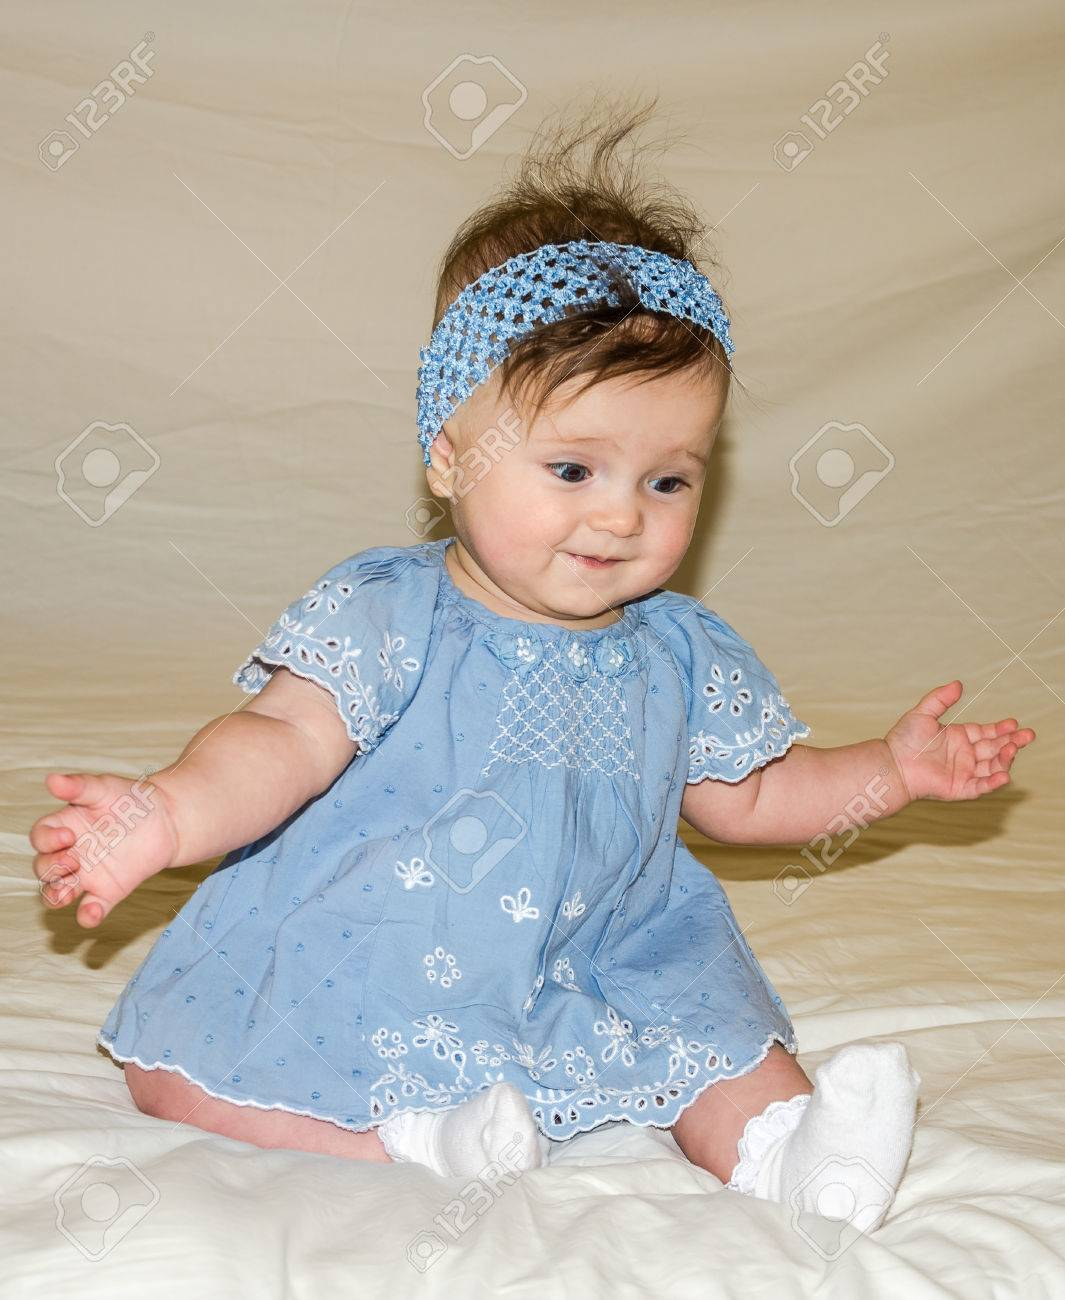 4a5bc3b8d Portrait Of The Beautiful Sweet Little Baby Girl In A Blue Dress ...